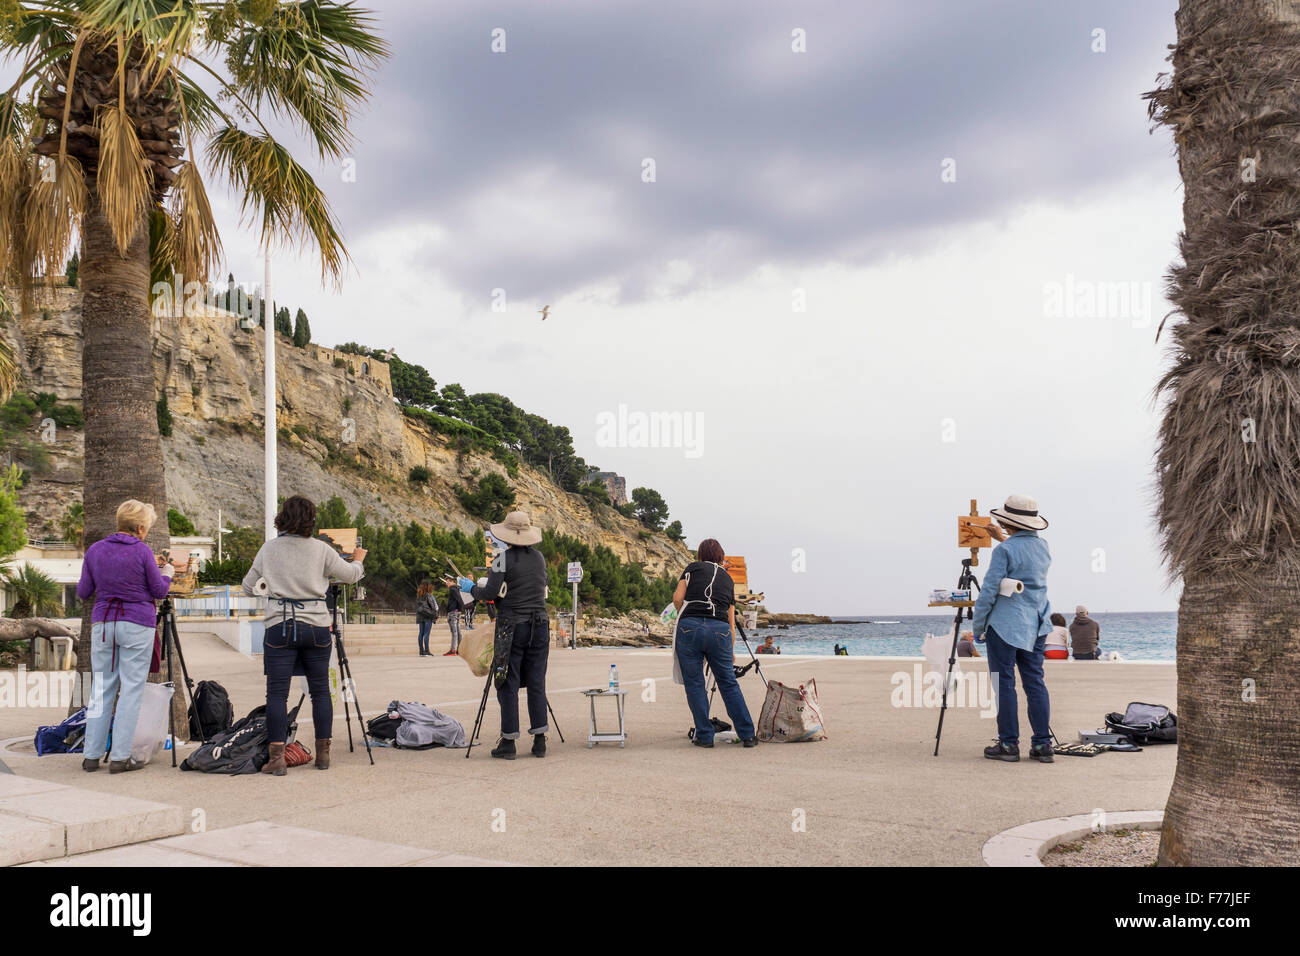 Artistes amateurs, Cassis , Atelier , Côte d Azur, France Photo Stock